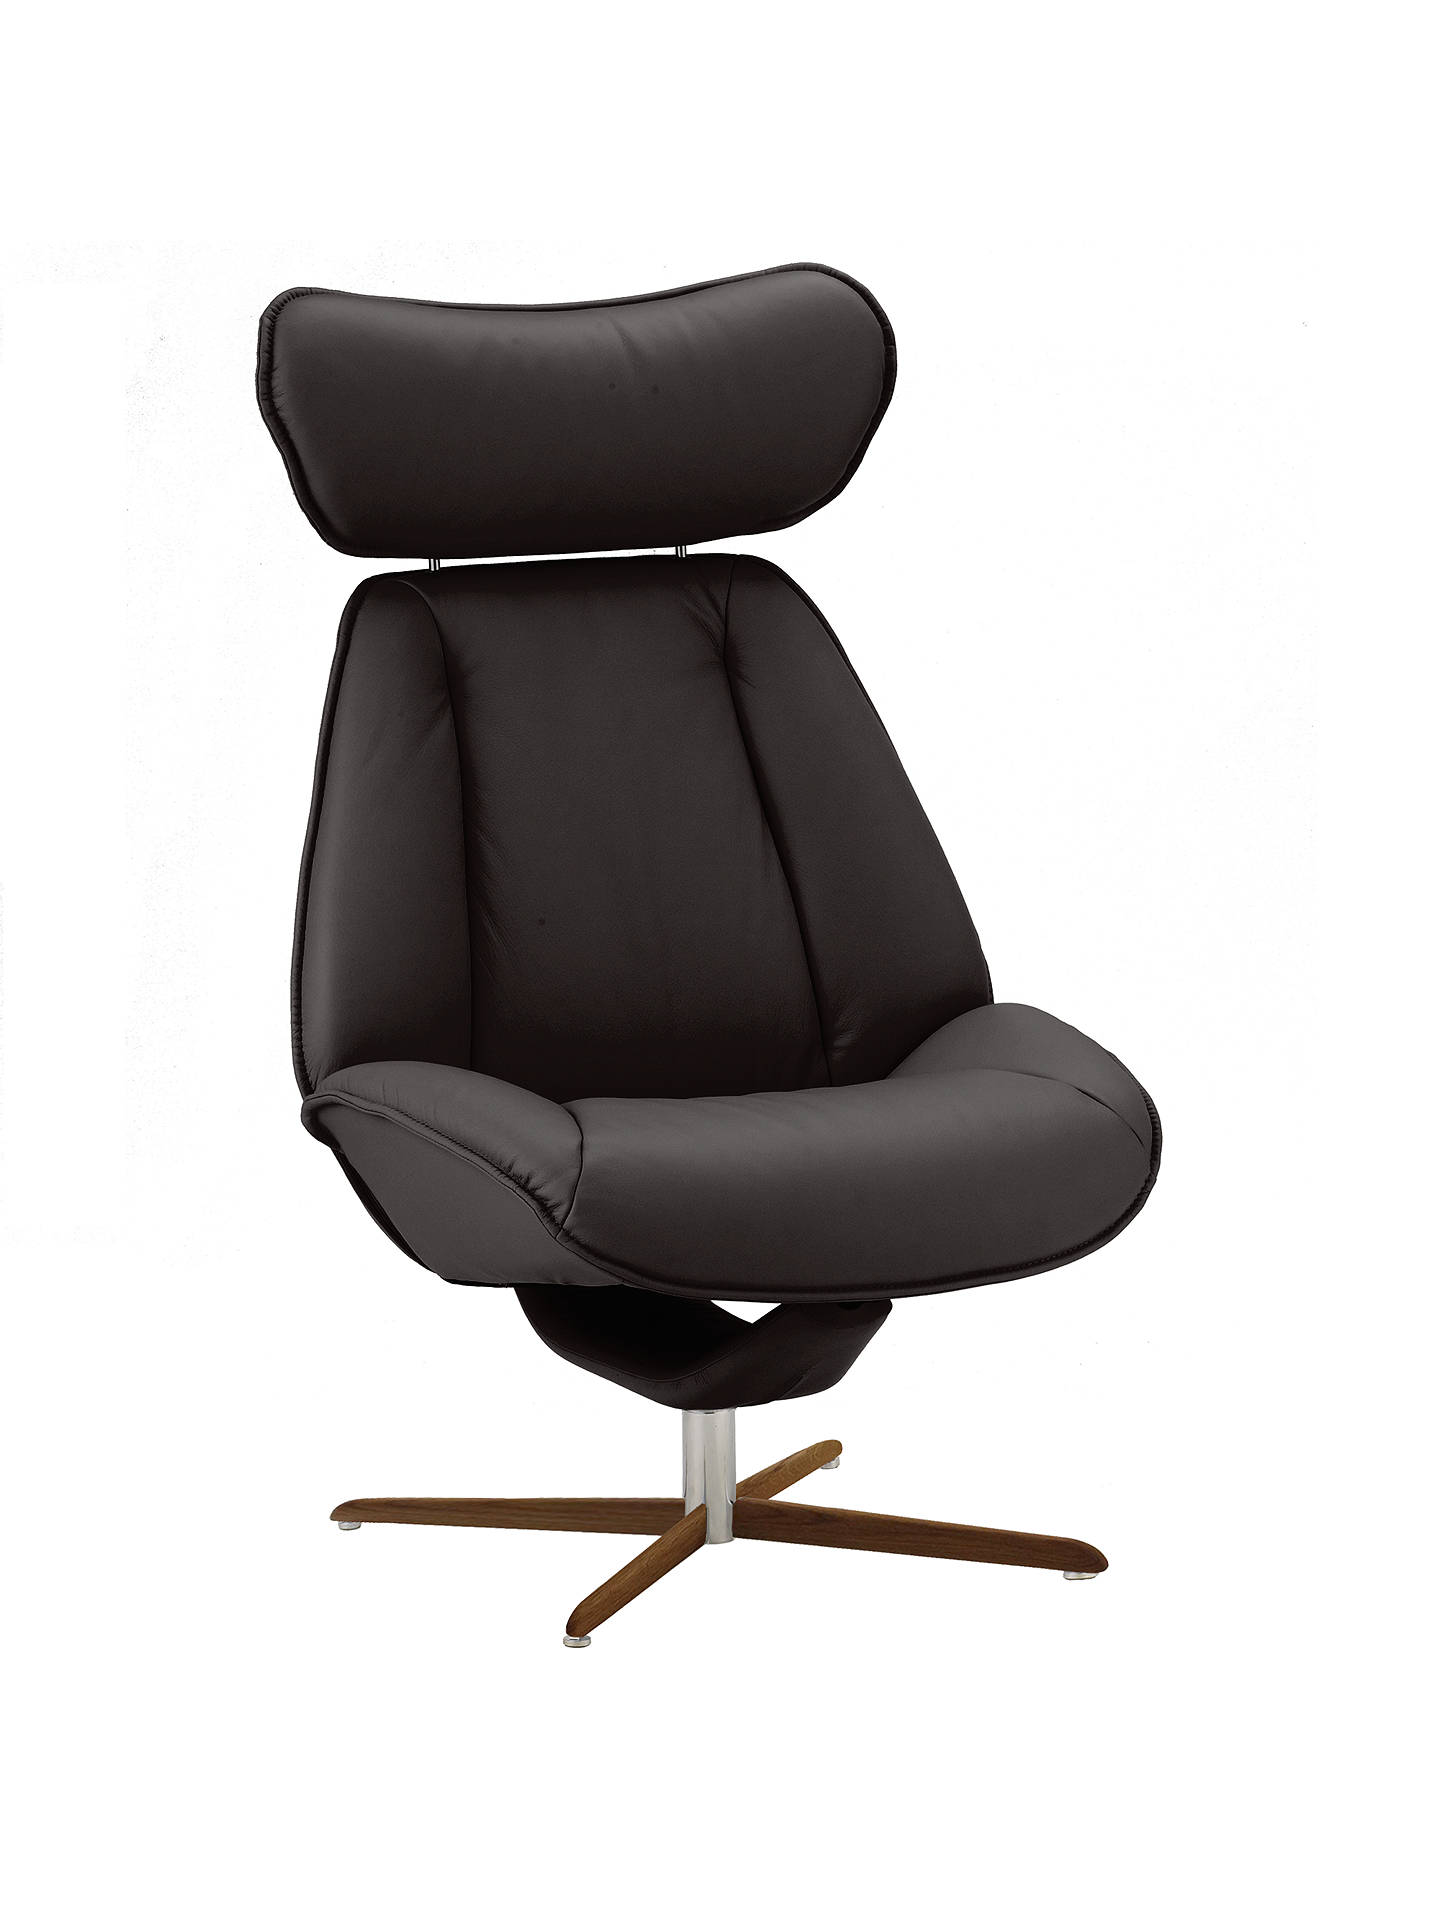 Fjords Motionconcept Tazio High Leather Recliner Chair